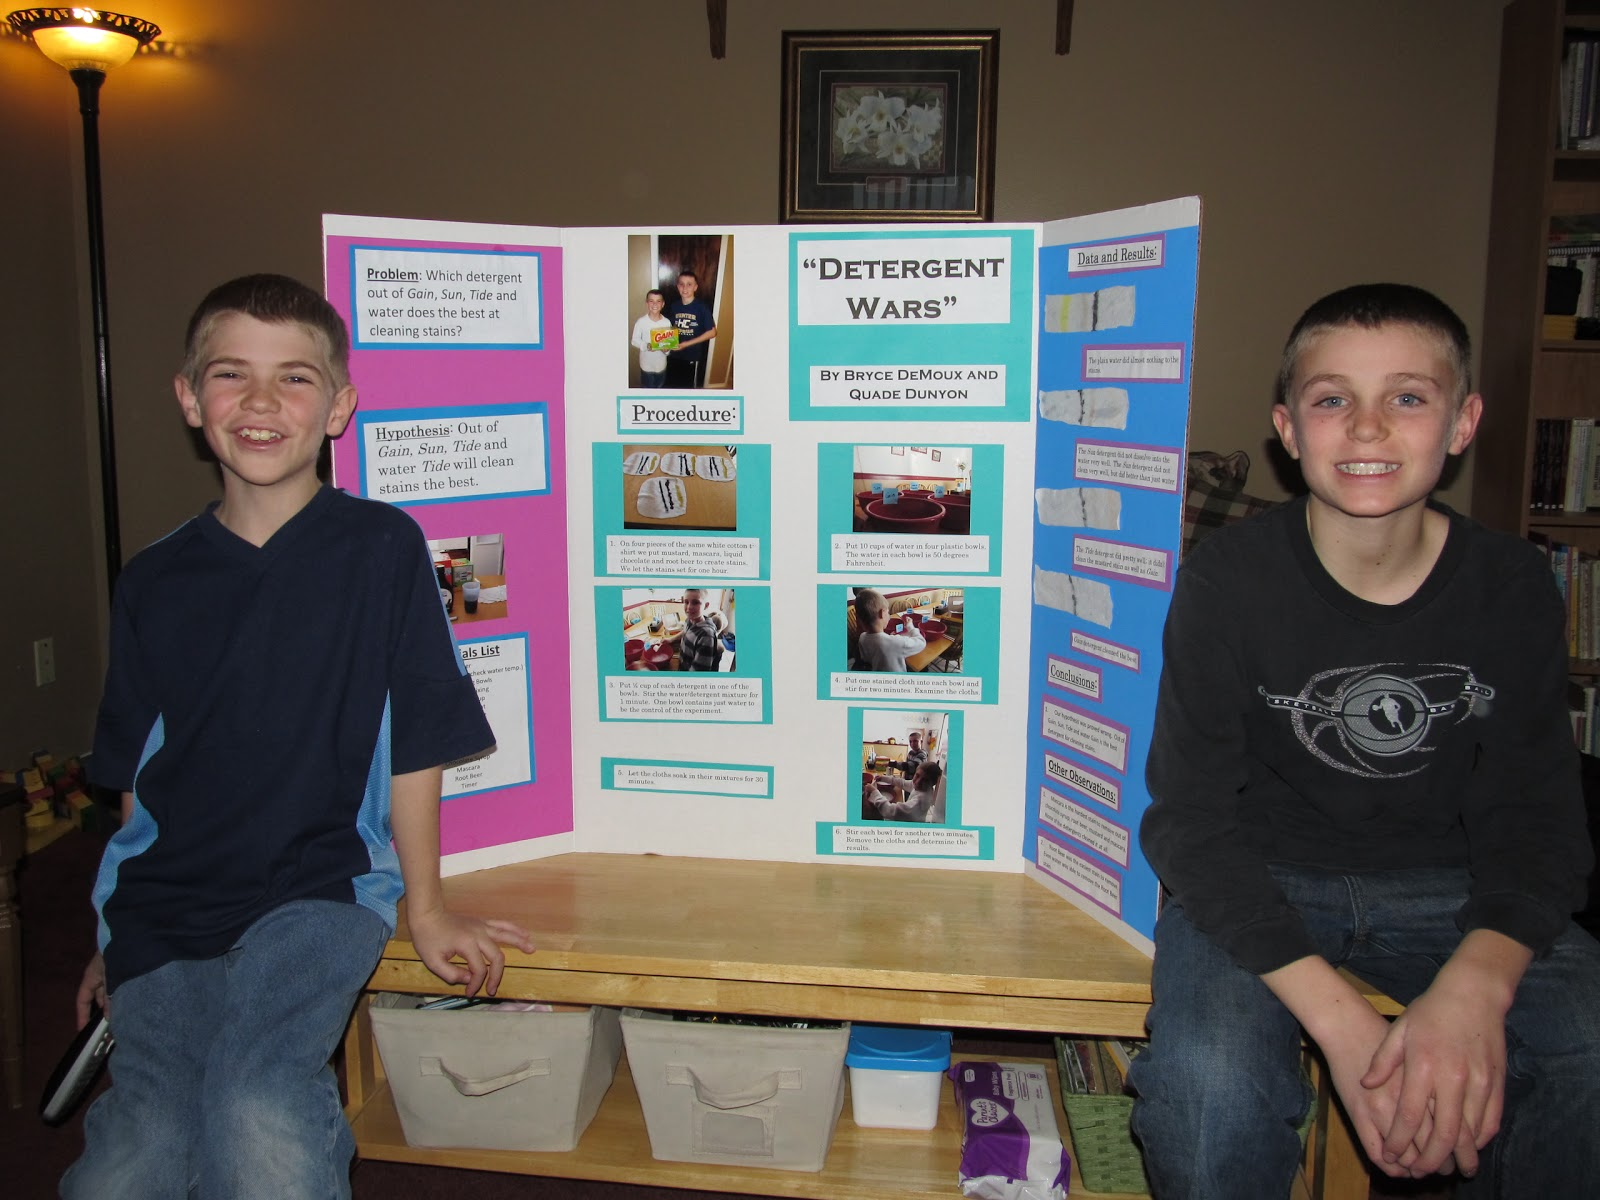 college level science fair projects College science fairs are not common, but should basically be an extension of high school science fairs they obviously need to be much more detailed and how funds for education are benefiting everybody the topics and projects should be something not possible at any other level of education.